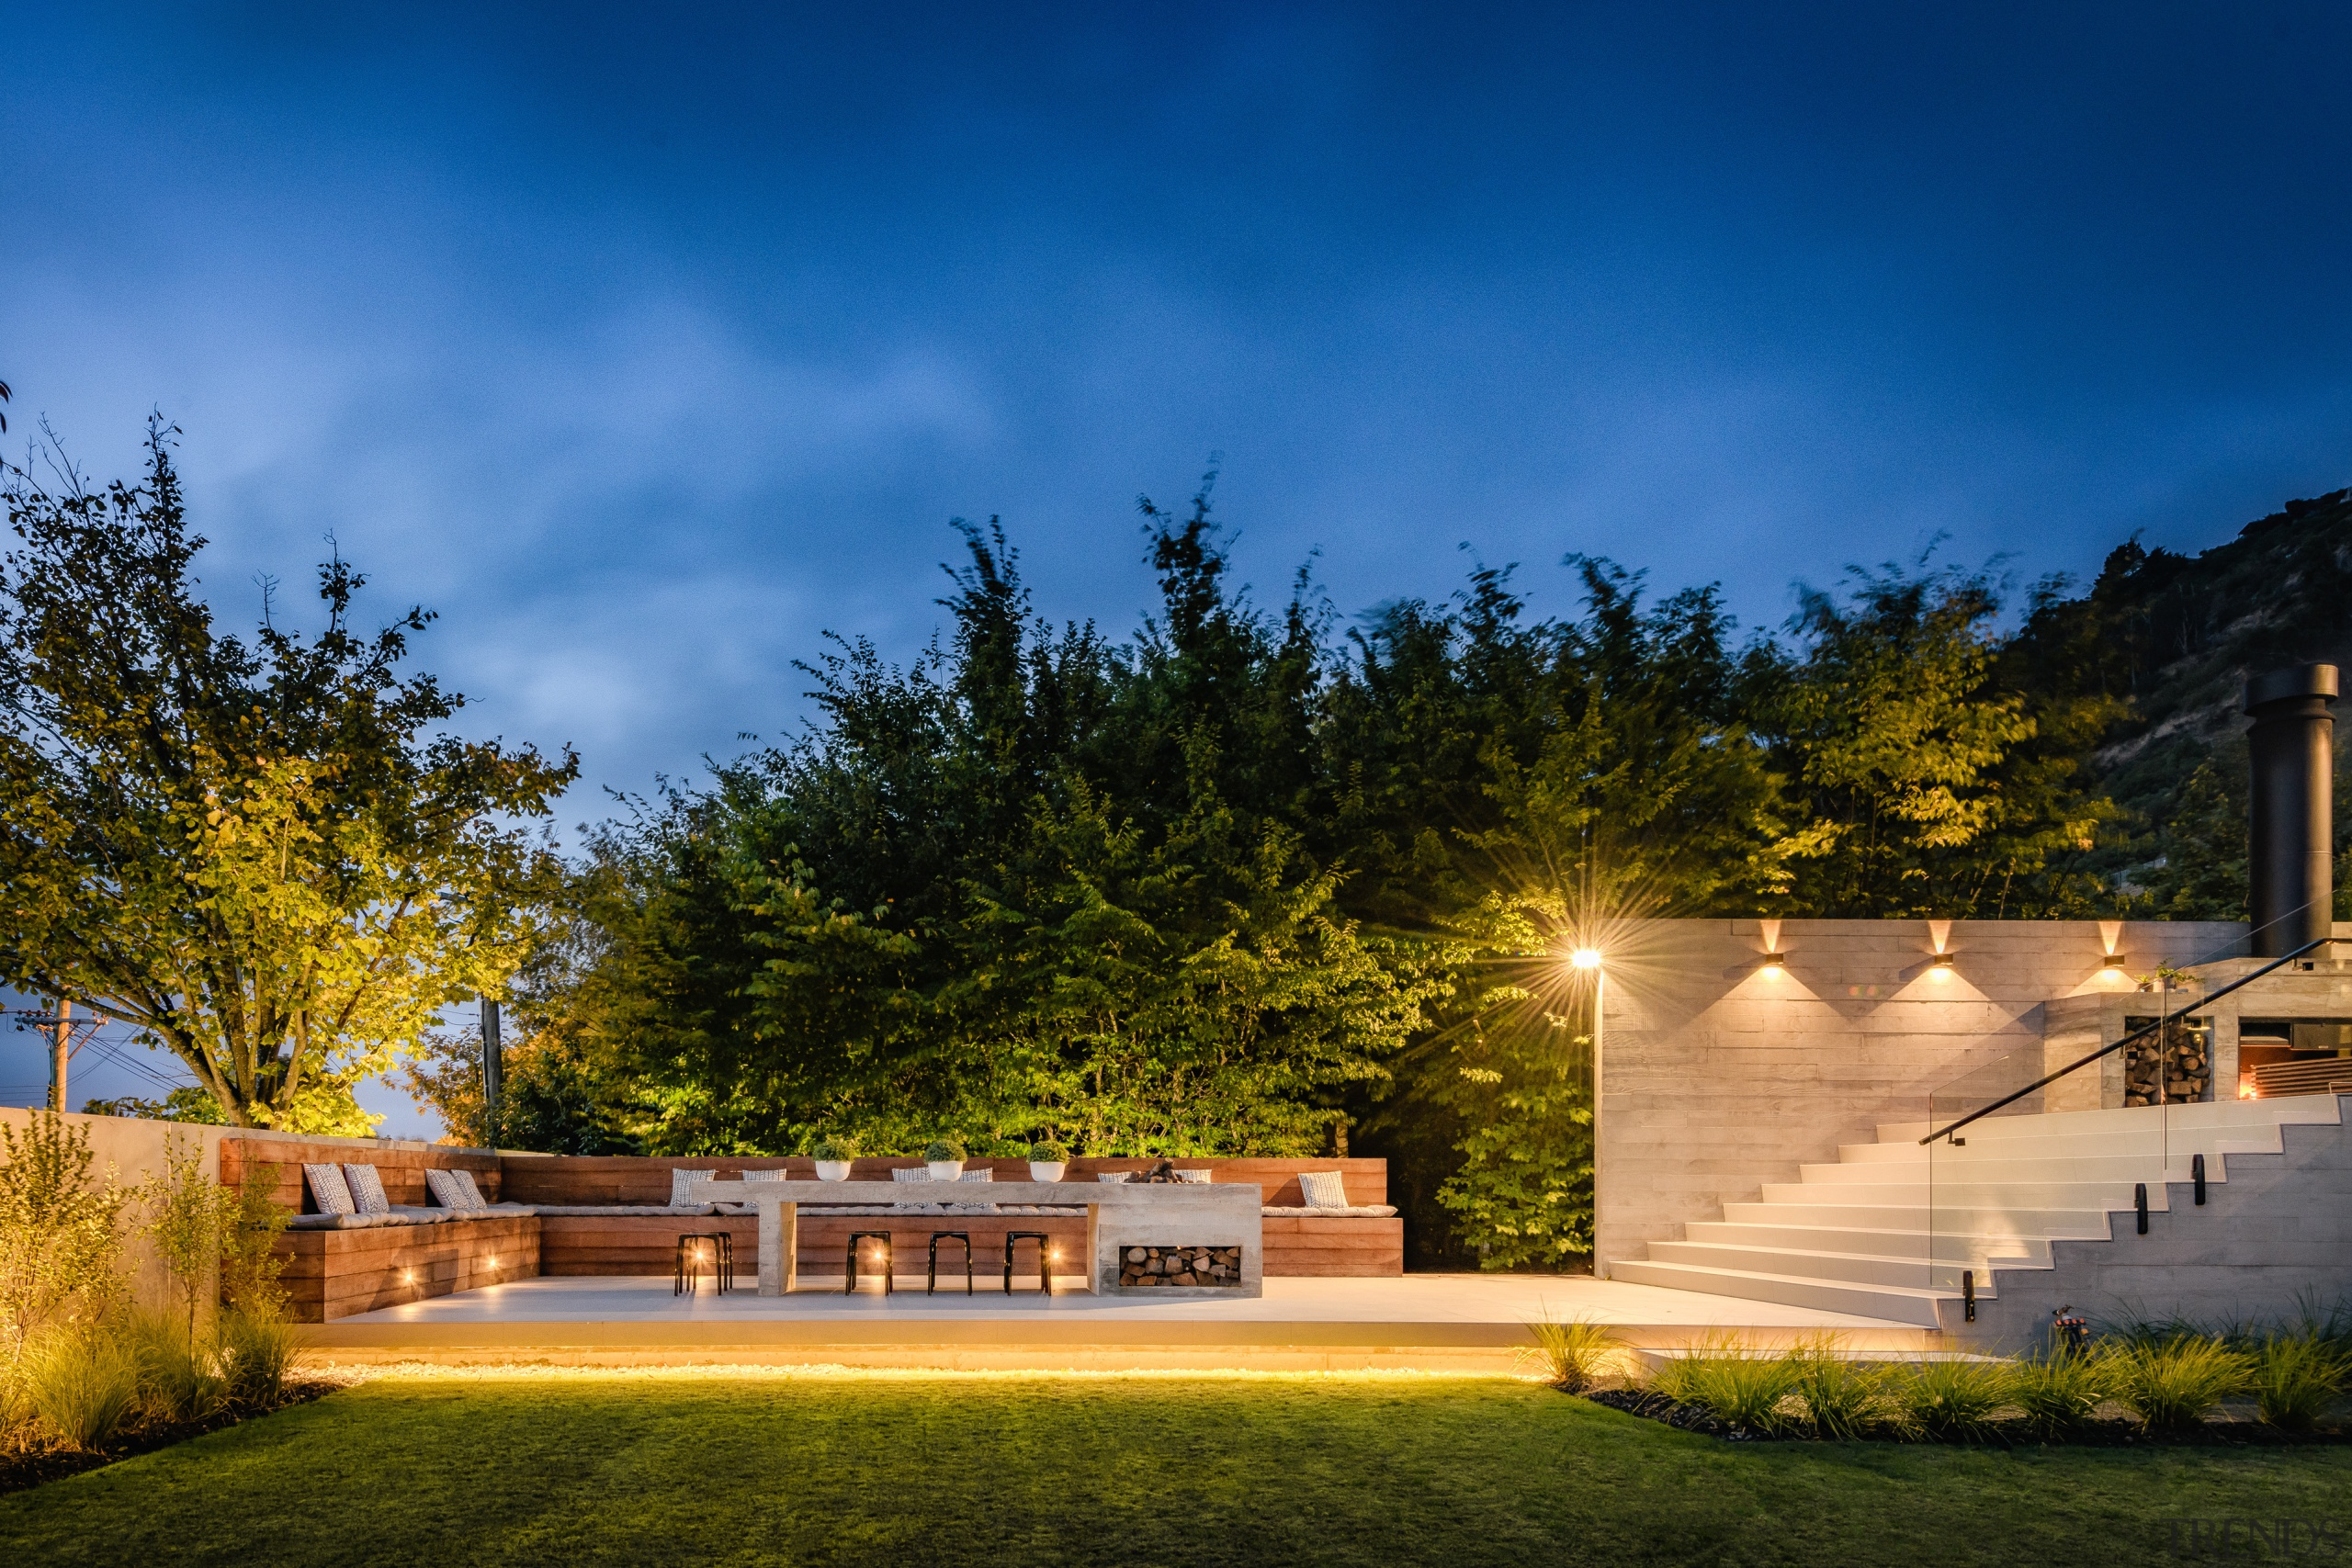 This home by designers Marcus Freeman and Hayden architecture, building, cloud, estate, facade, grass, home, house, land lot, landscape, landscape lighting, landscaping, light, lighting, night, property, real estate, residential area, sky, tree, yard, brown